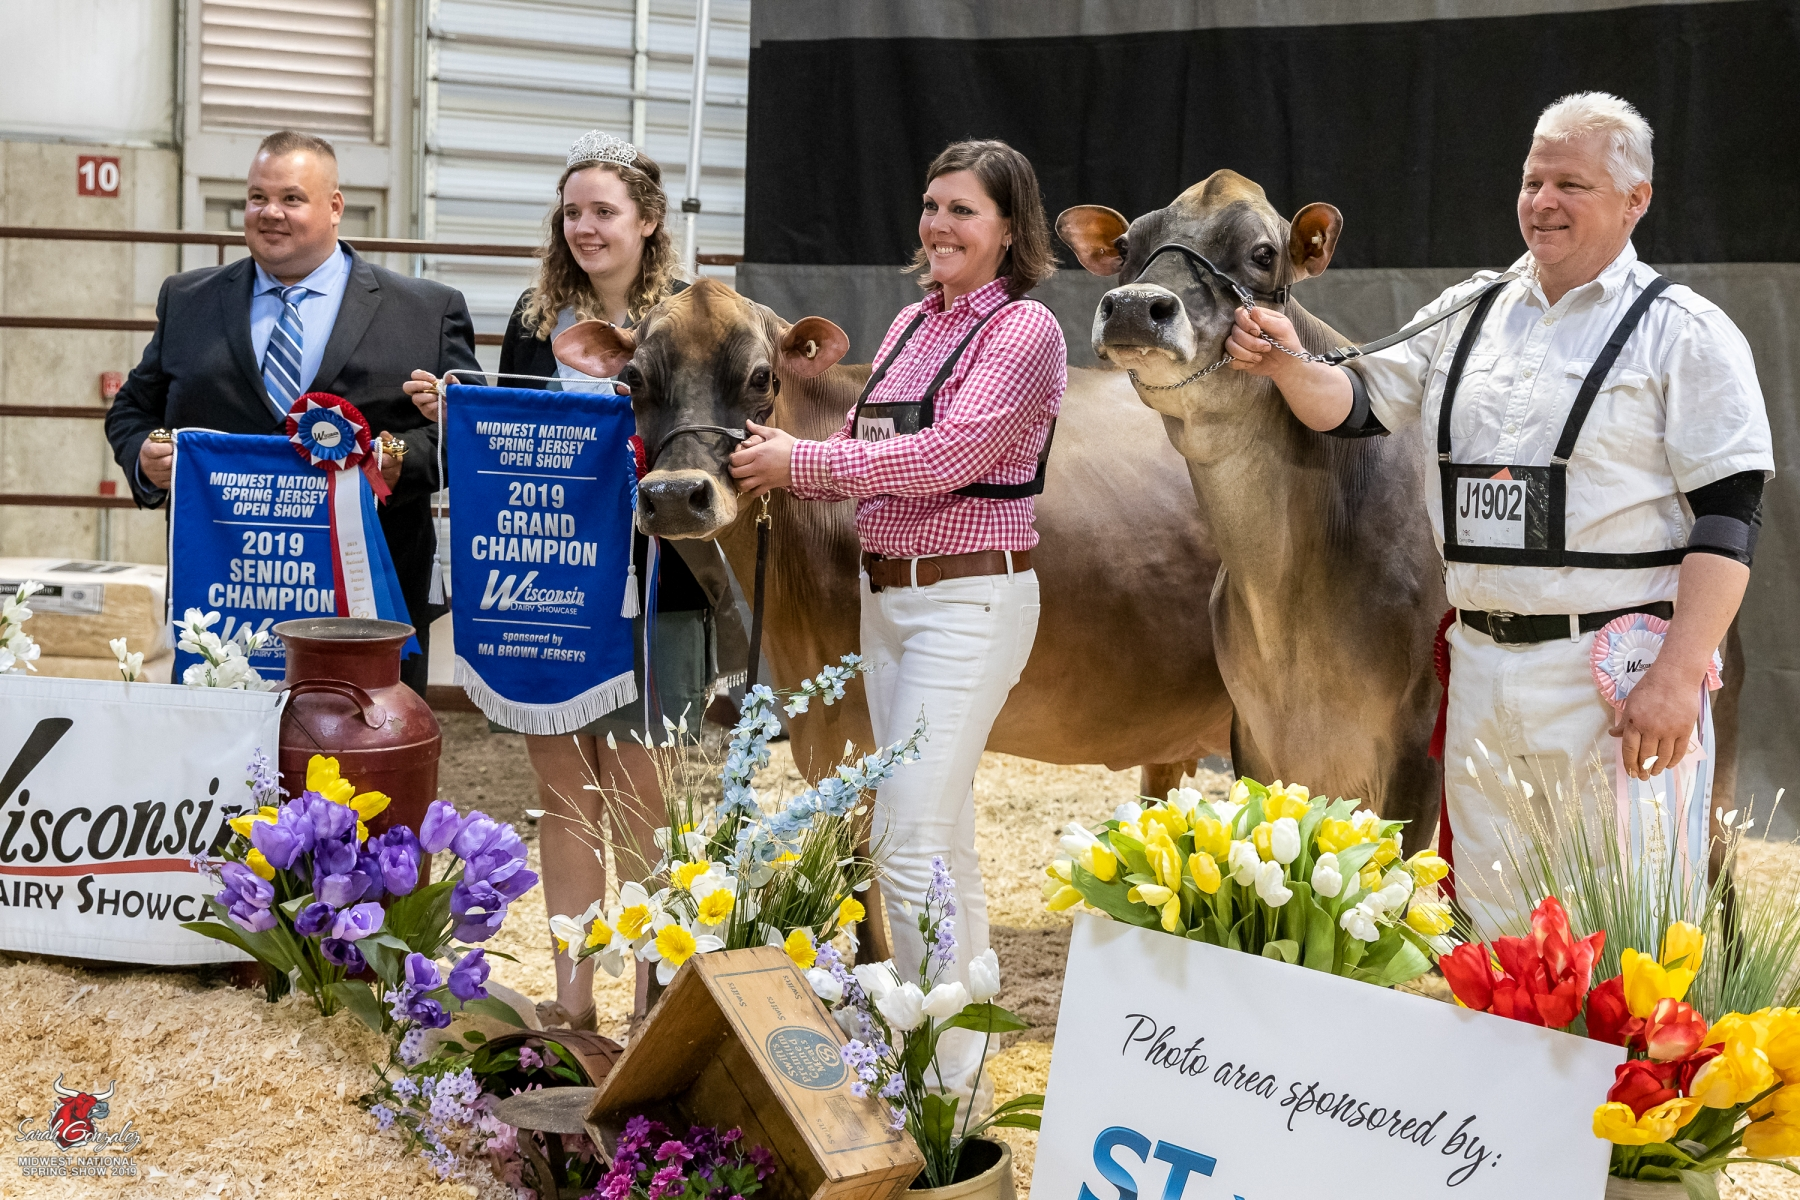 Midwest National Spring Jersey Show 2019 :: The Bullvine - The Dairy